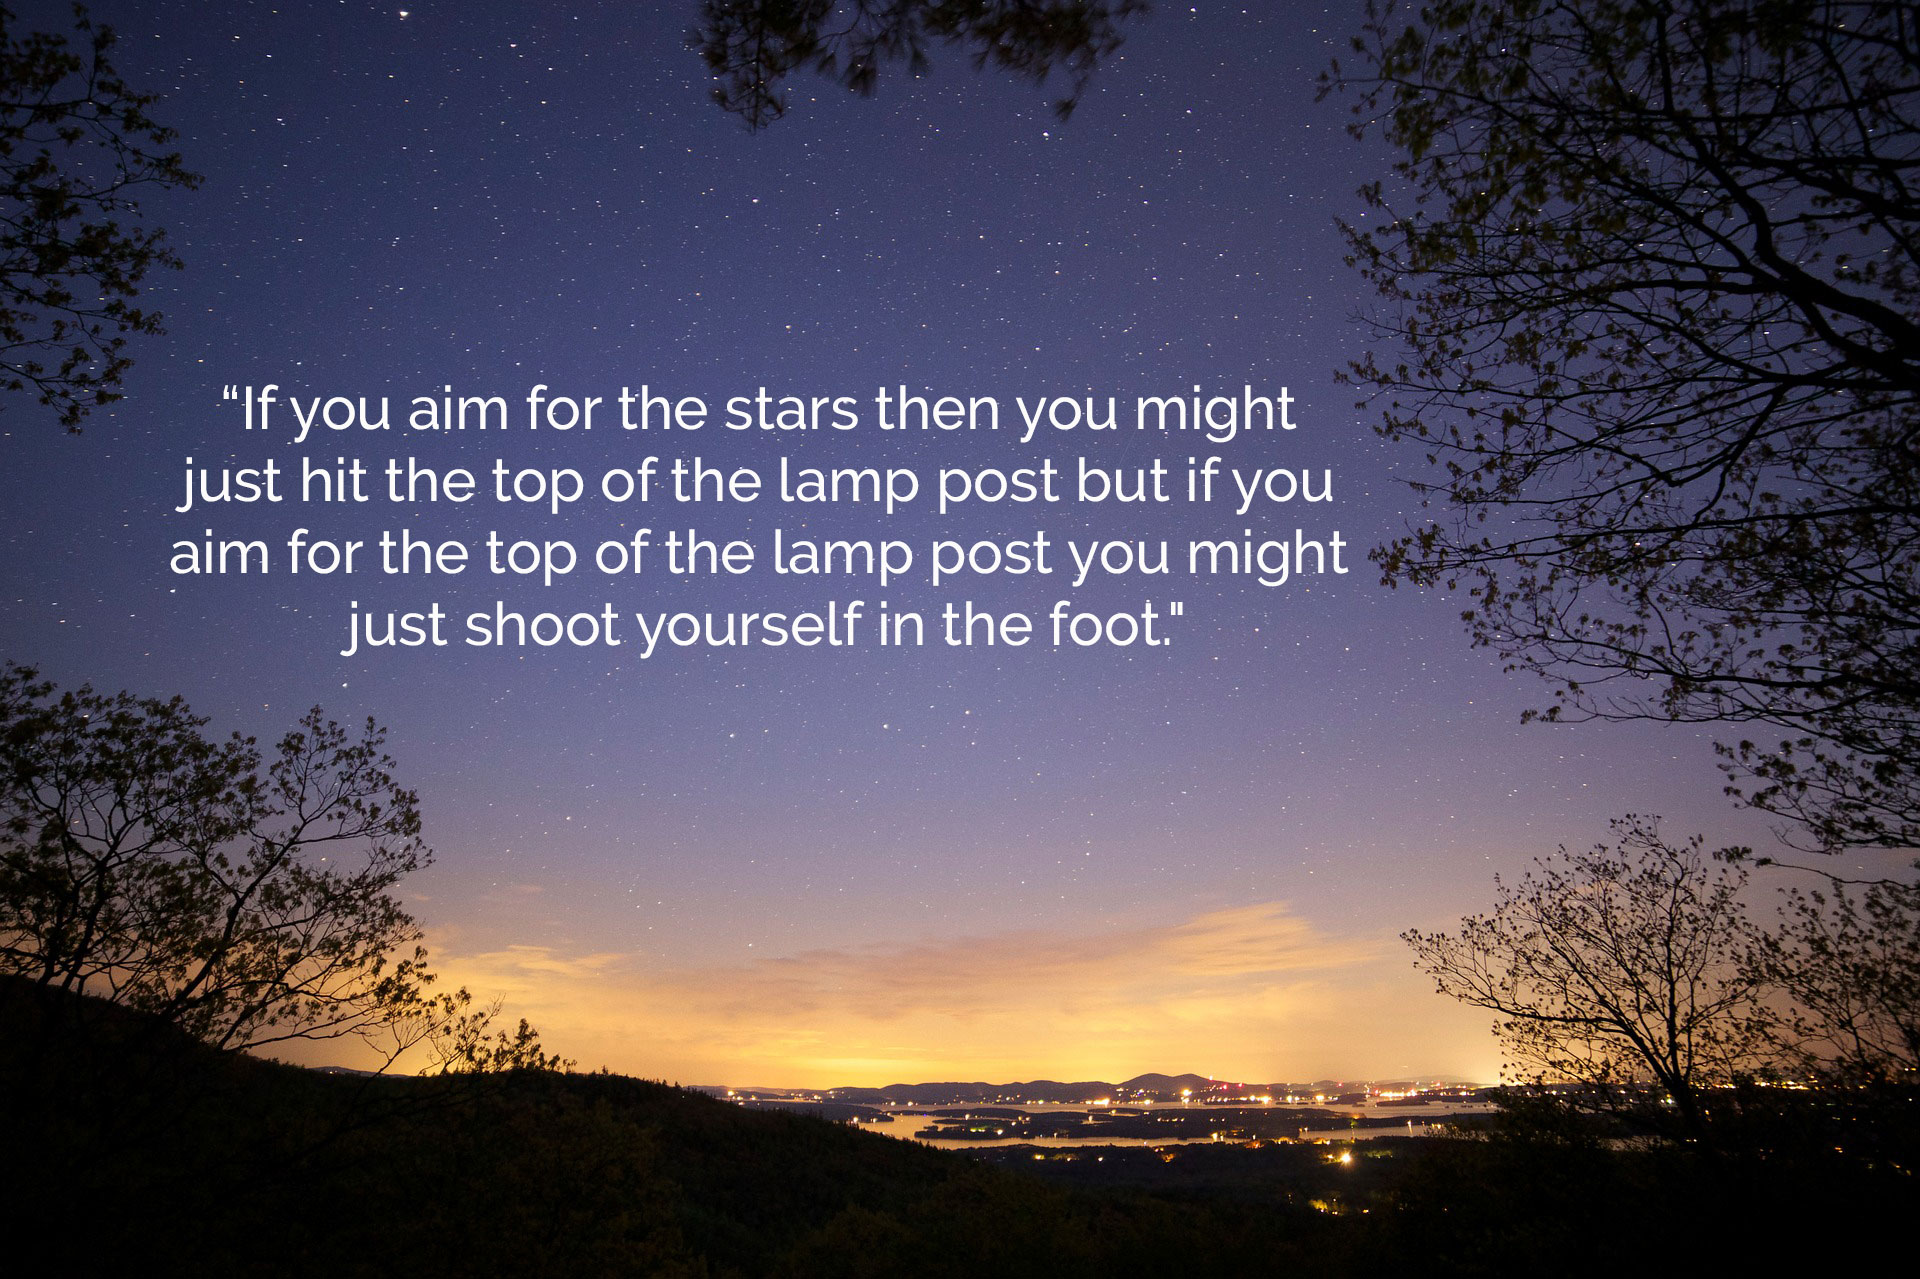 Aim for the stars